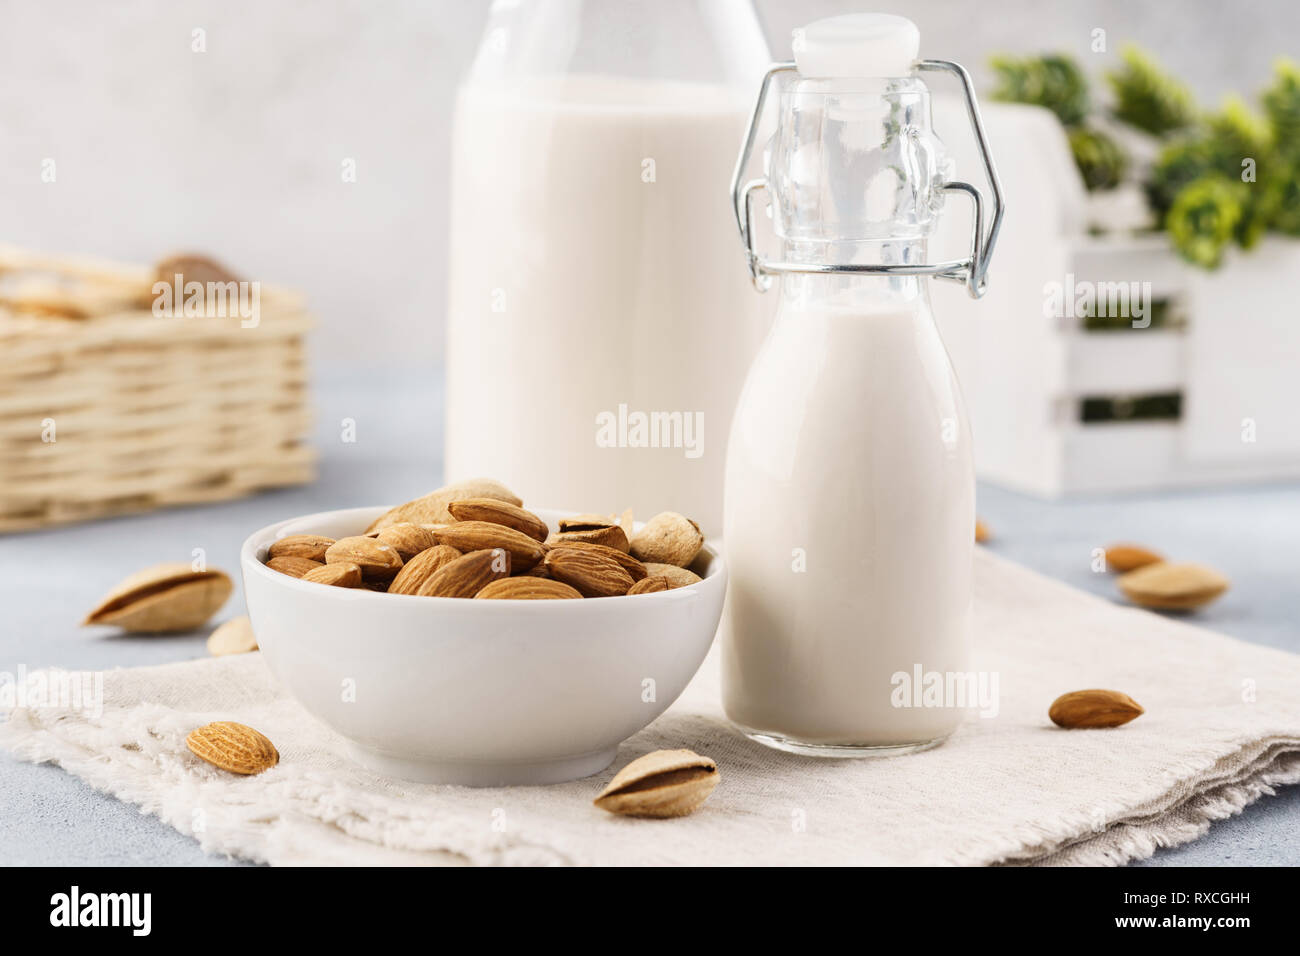 Homemade nut milk in bottles and raw almonds. Milk substitute. - Stock Image